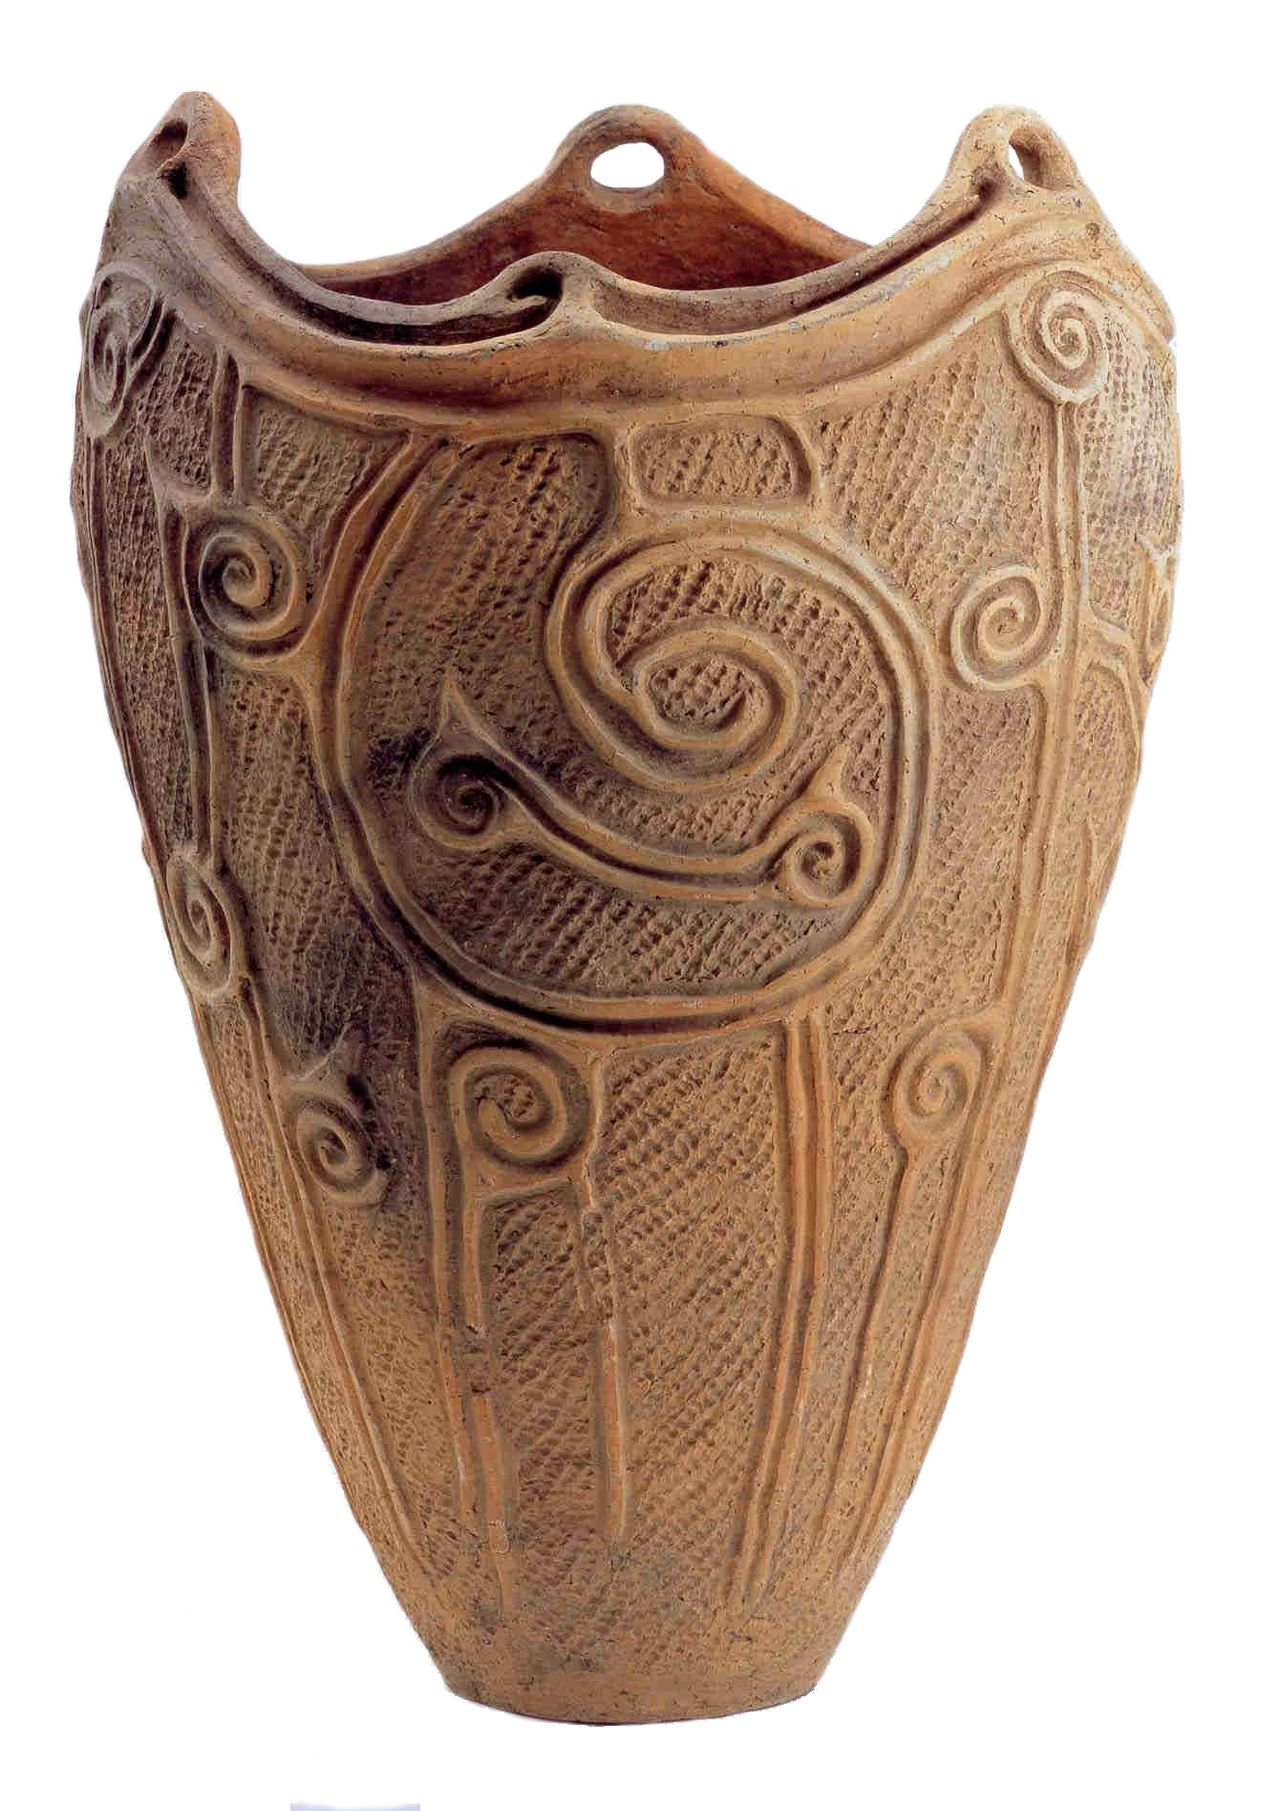 A container with spiral patterns excavated from a site in Morioka, Iwate Prefecture. (Courtesy Morioka Archeological Site Study Museum)